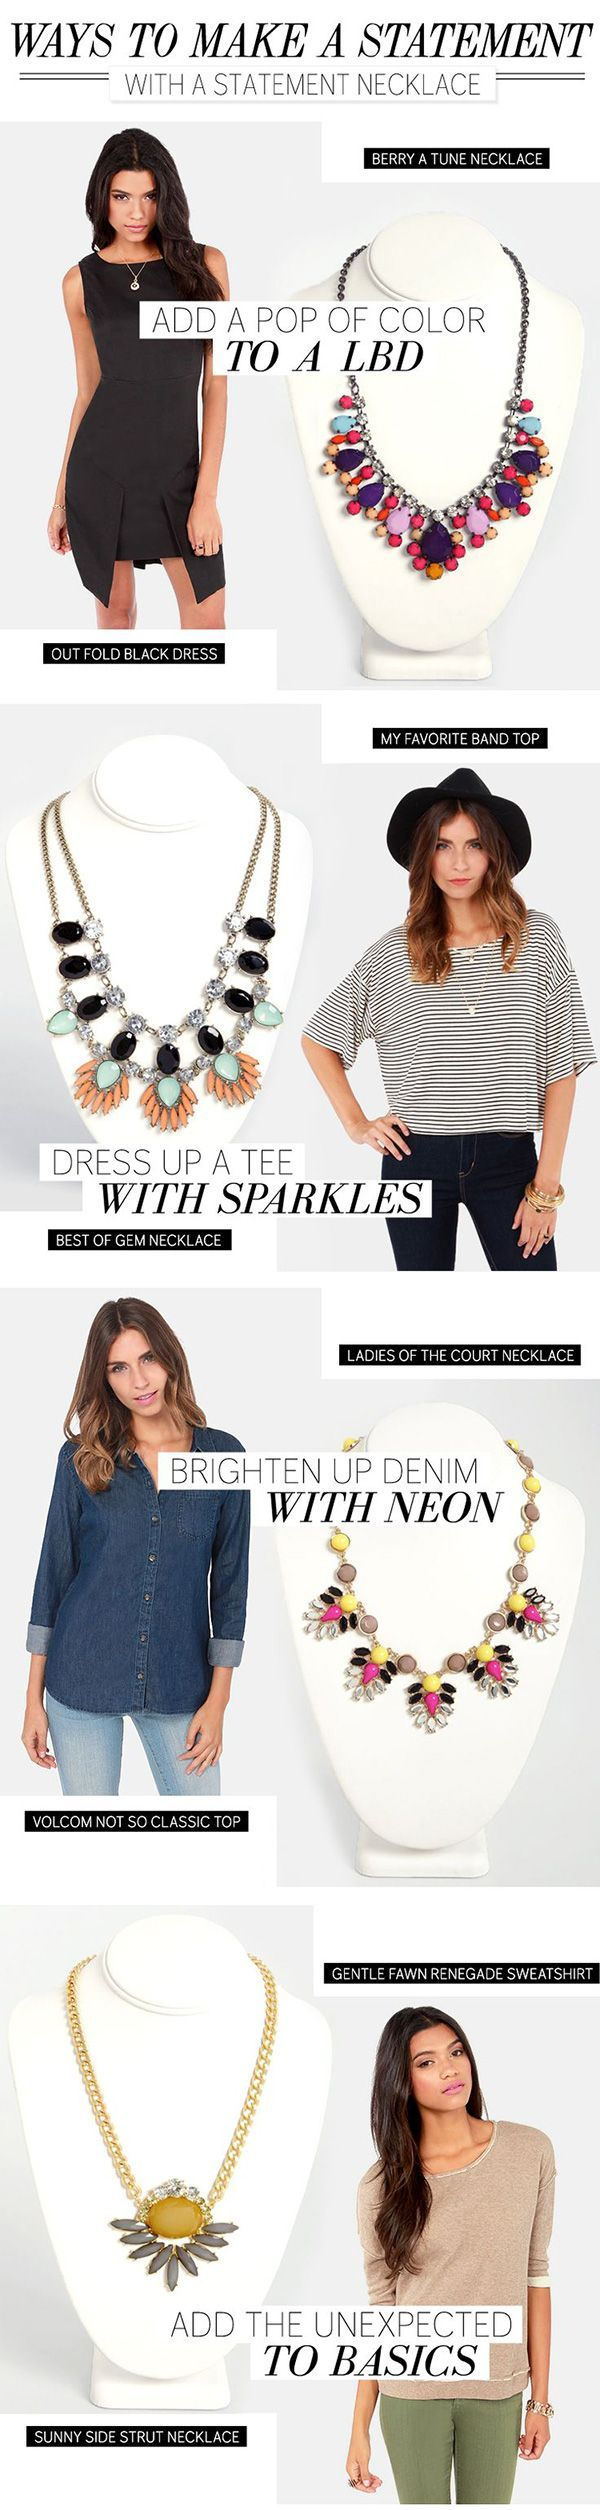 20 Style Tips & Ideas On How To Wear Statement Necklaces | Gurl.com